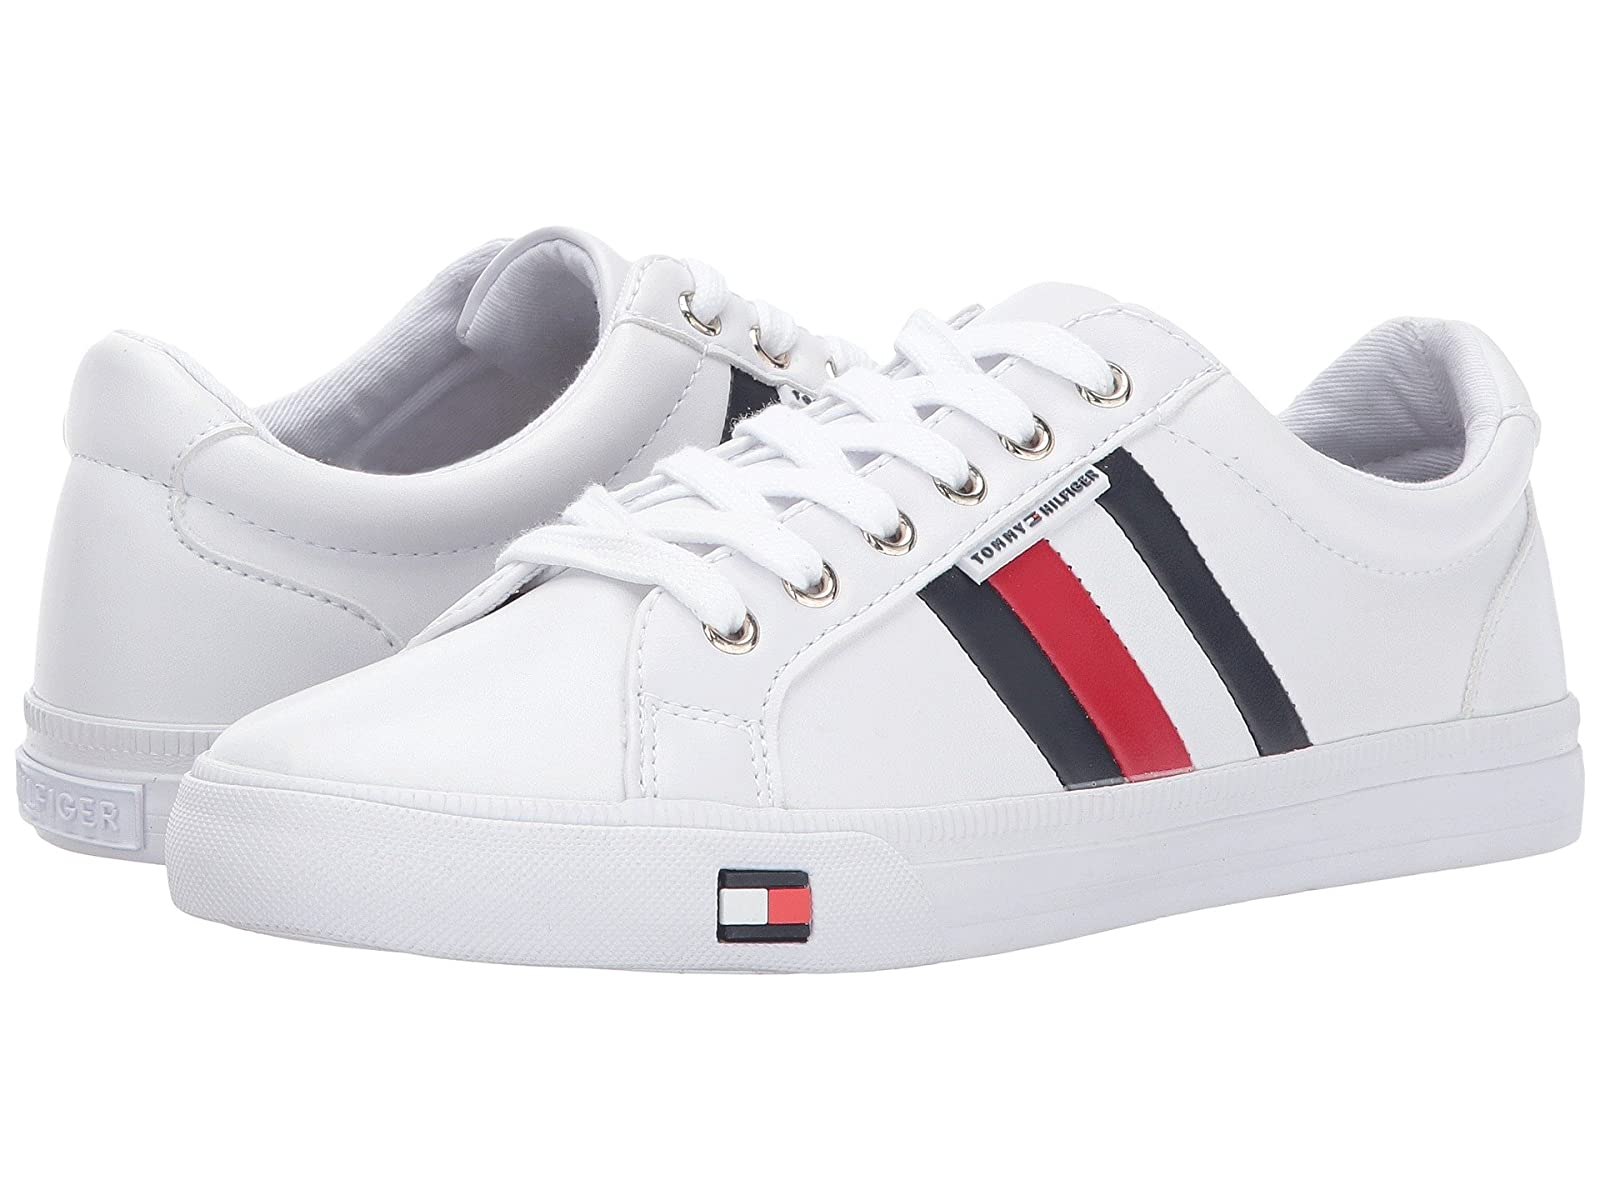 Tommy Hilfiger LightzCheap and distinctive eye-catching shoes